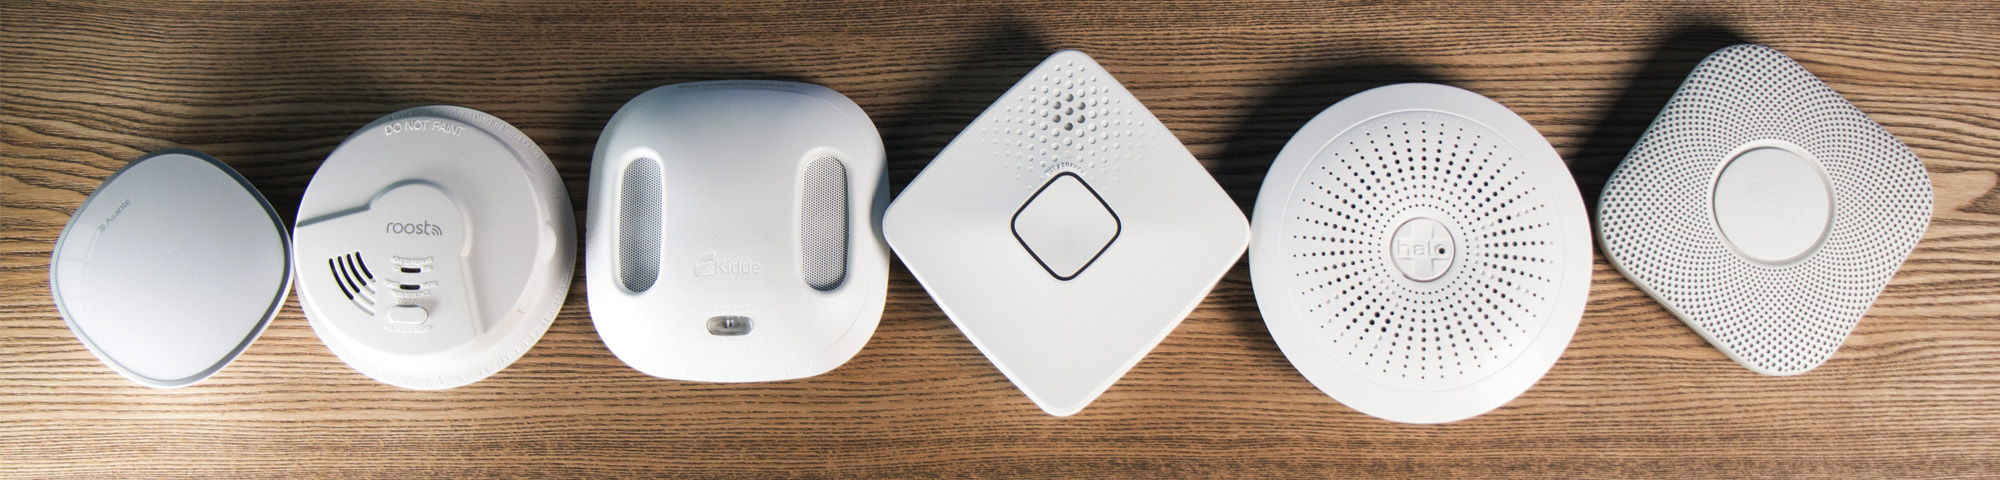 Best Smart Smoke Detectors 2019 - Wi-Fi Connected